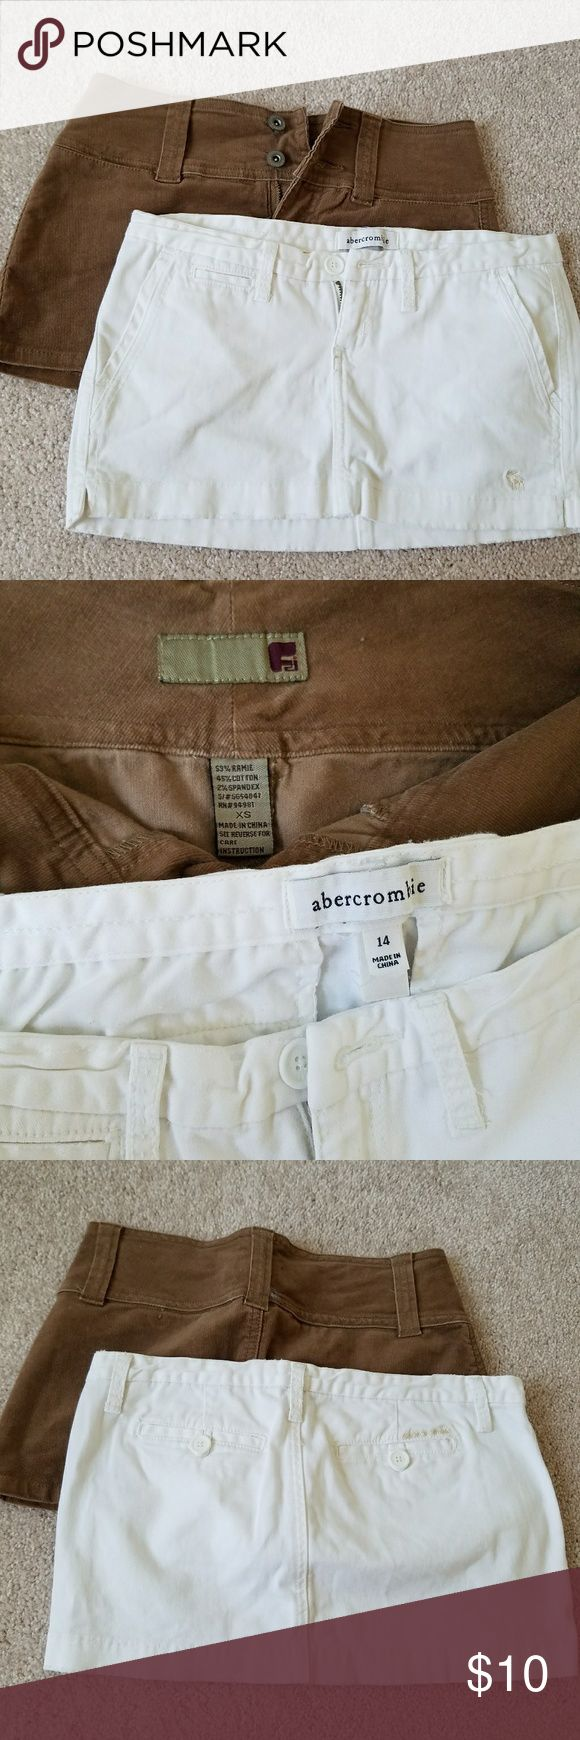 Abercrombie Girls skirts Perfect condition, brown one is not Abercrombie , both fit like Xs. Come together as bundle Abercrombie & Fitch Skirts Mini